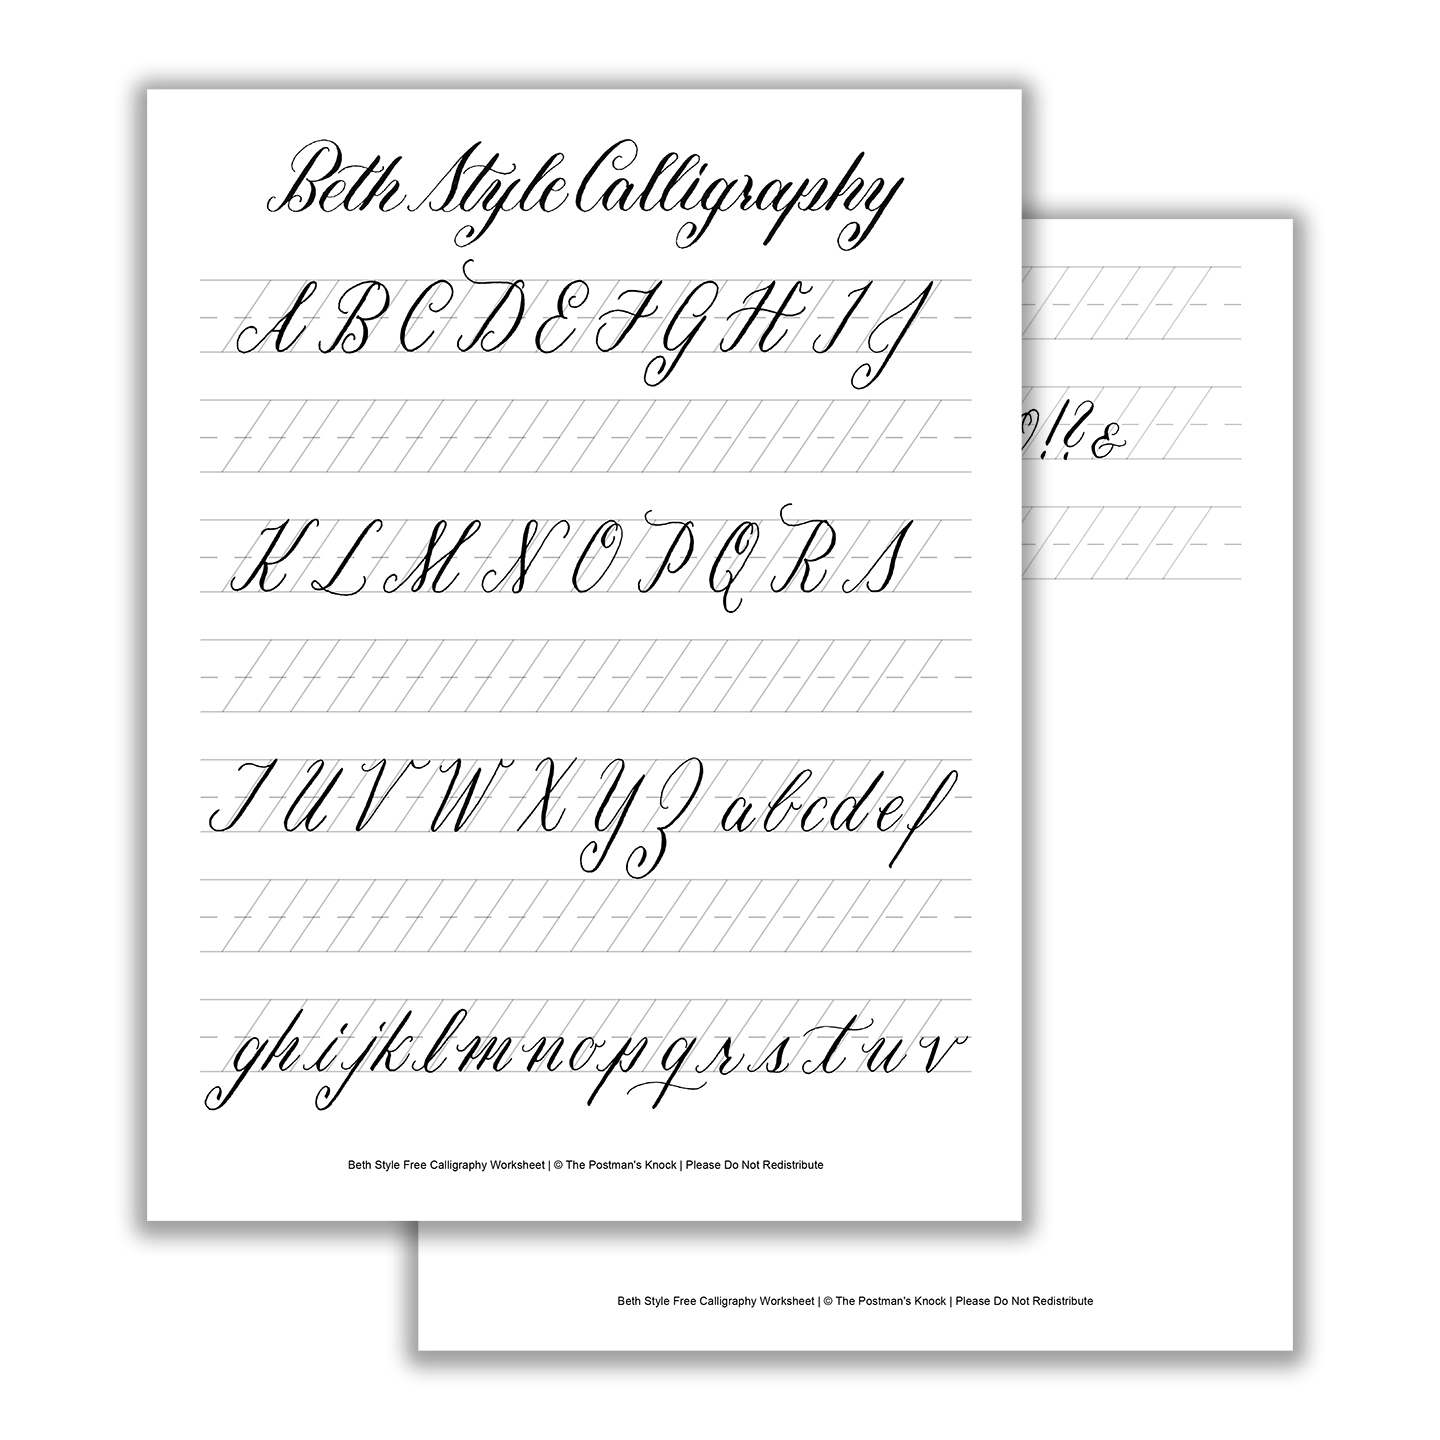 picture relating to Printable Calligraphy Worksheets named Printable Calligraphy Exemplar - Beth Design